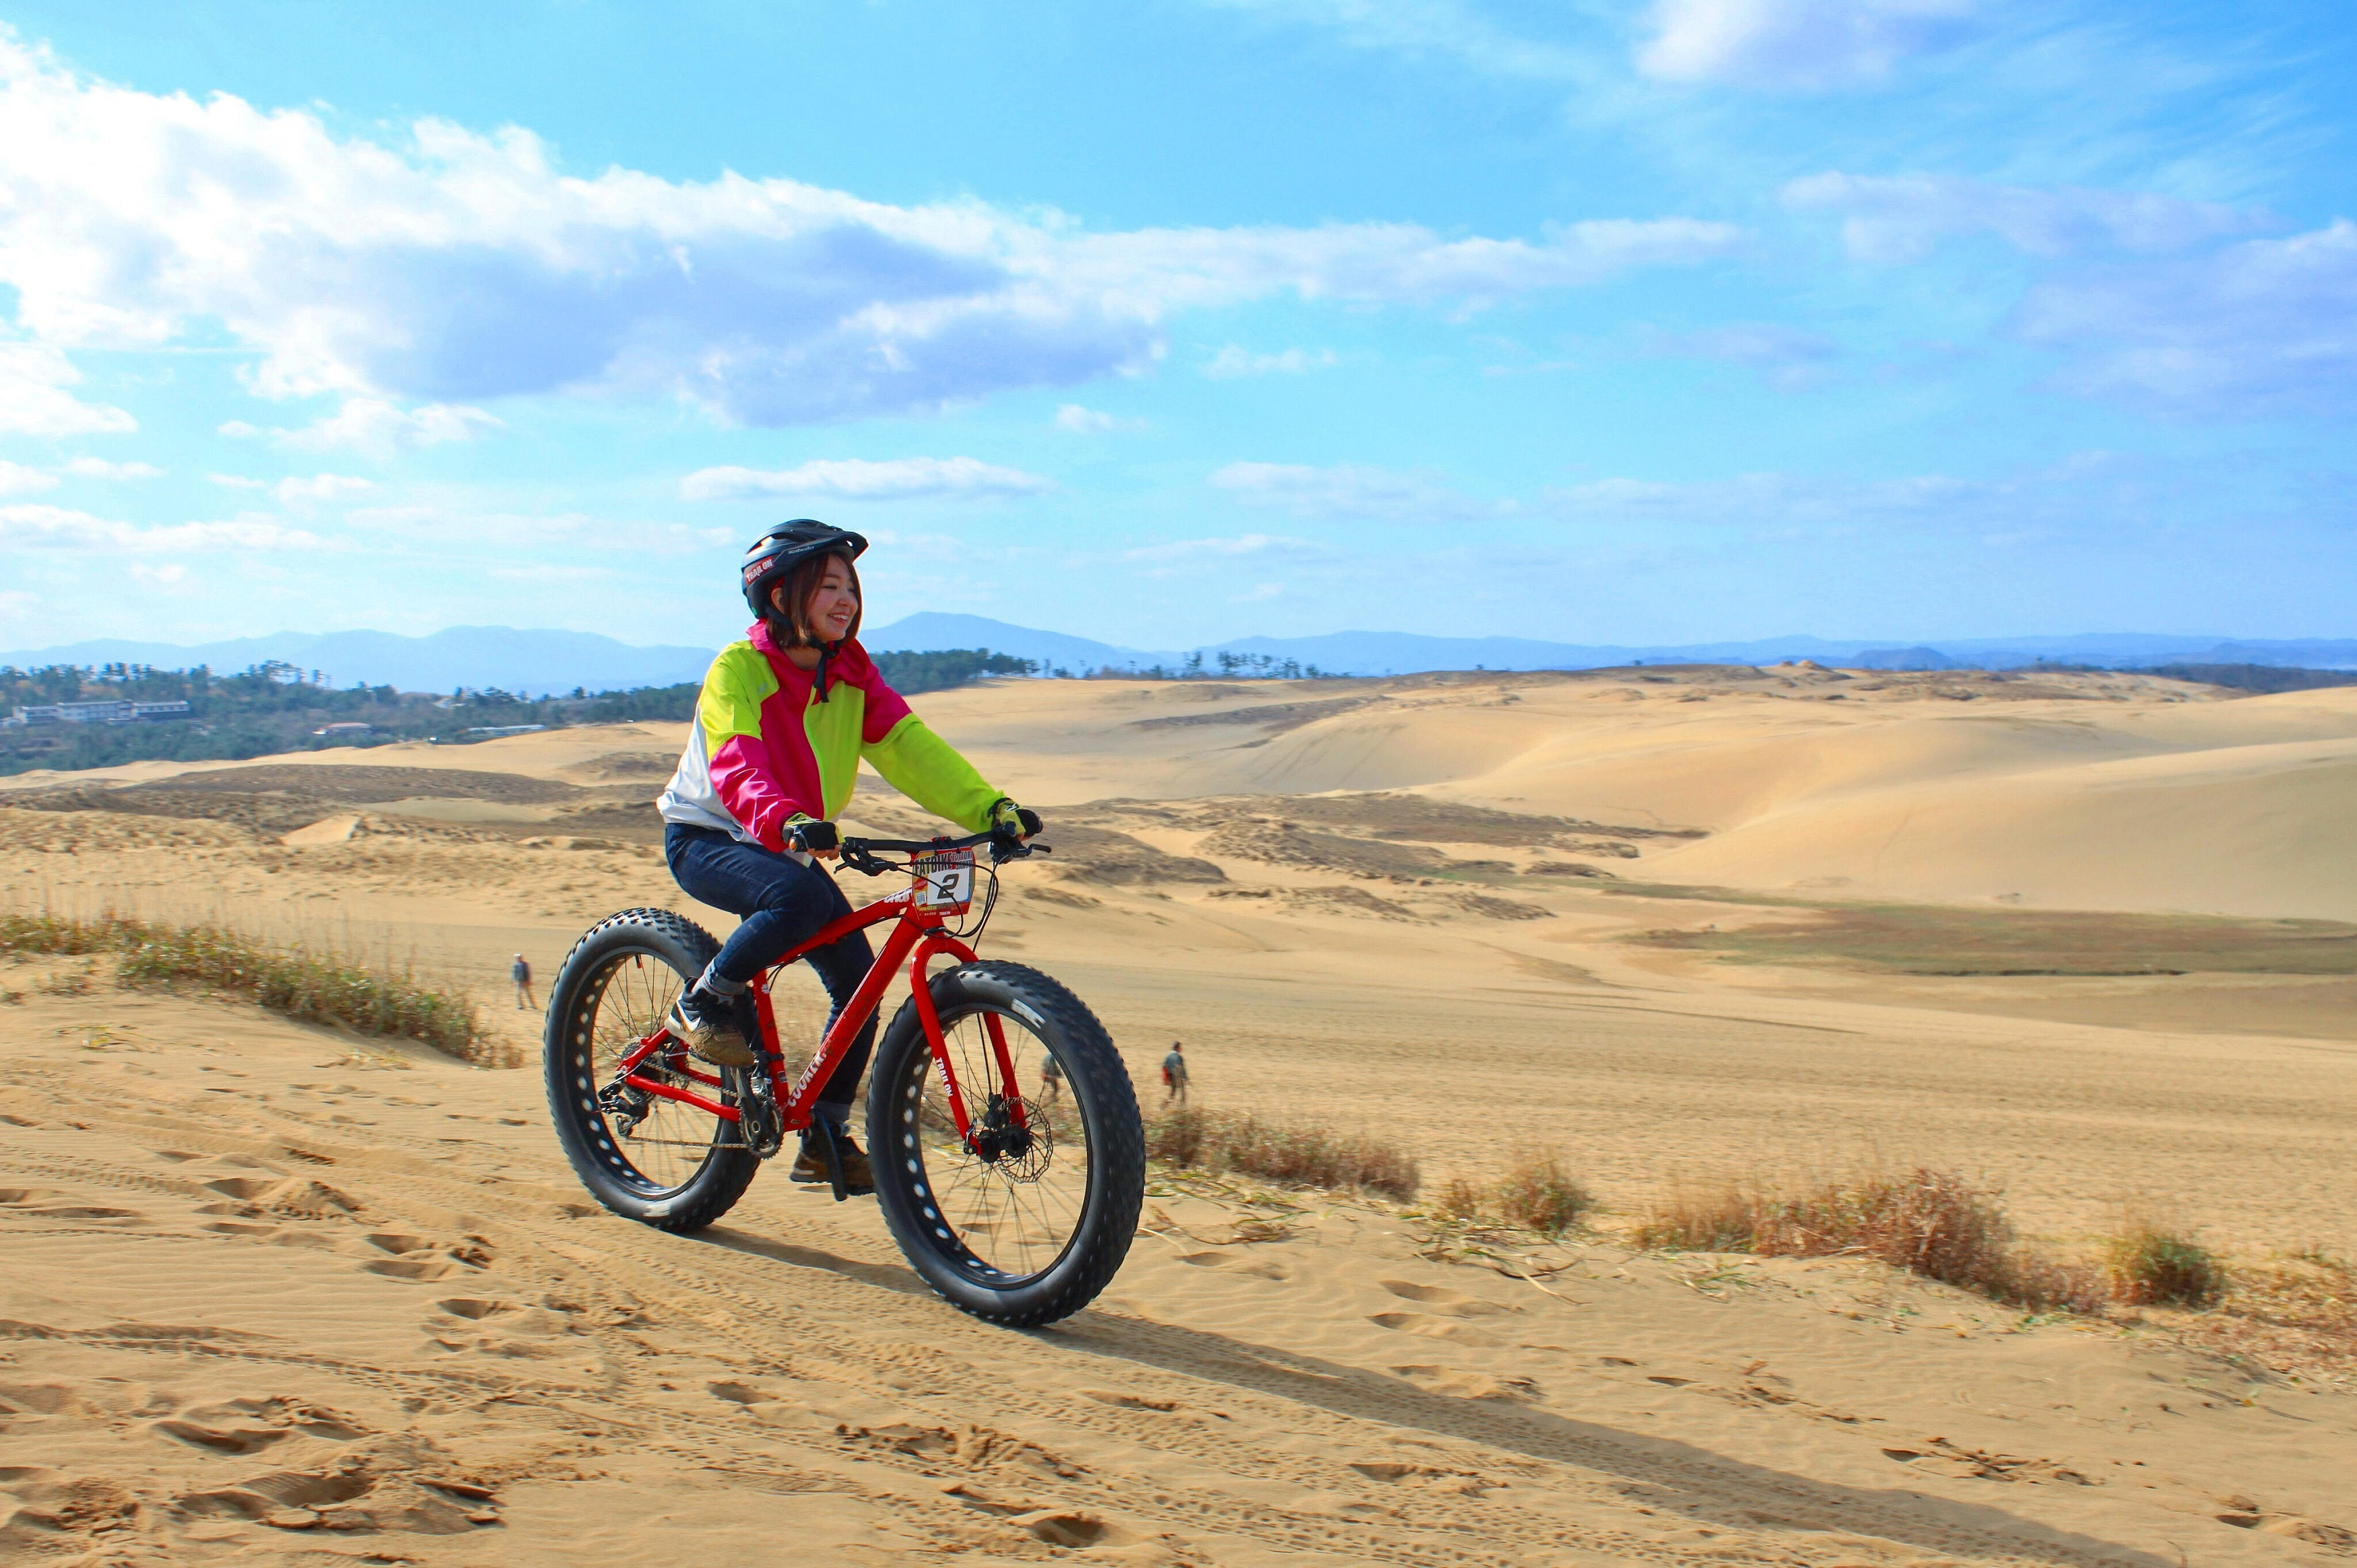 Mountain Biking on the Tottori Sand Dunes (Eastern Part of Tottori)